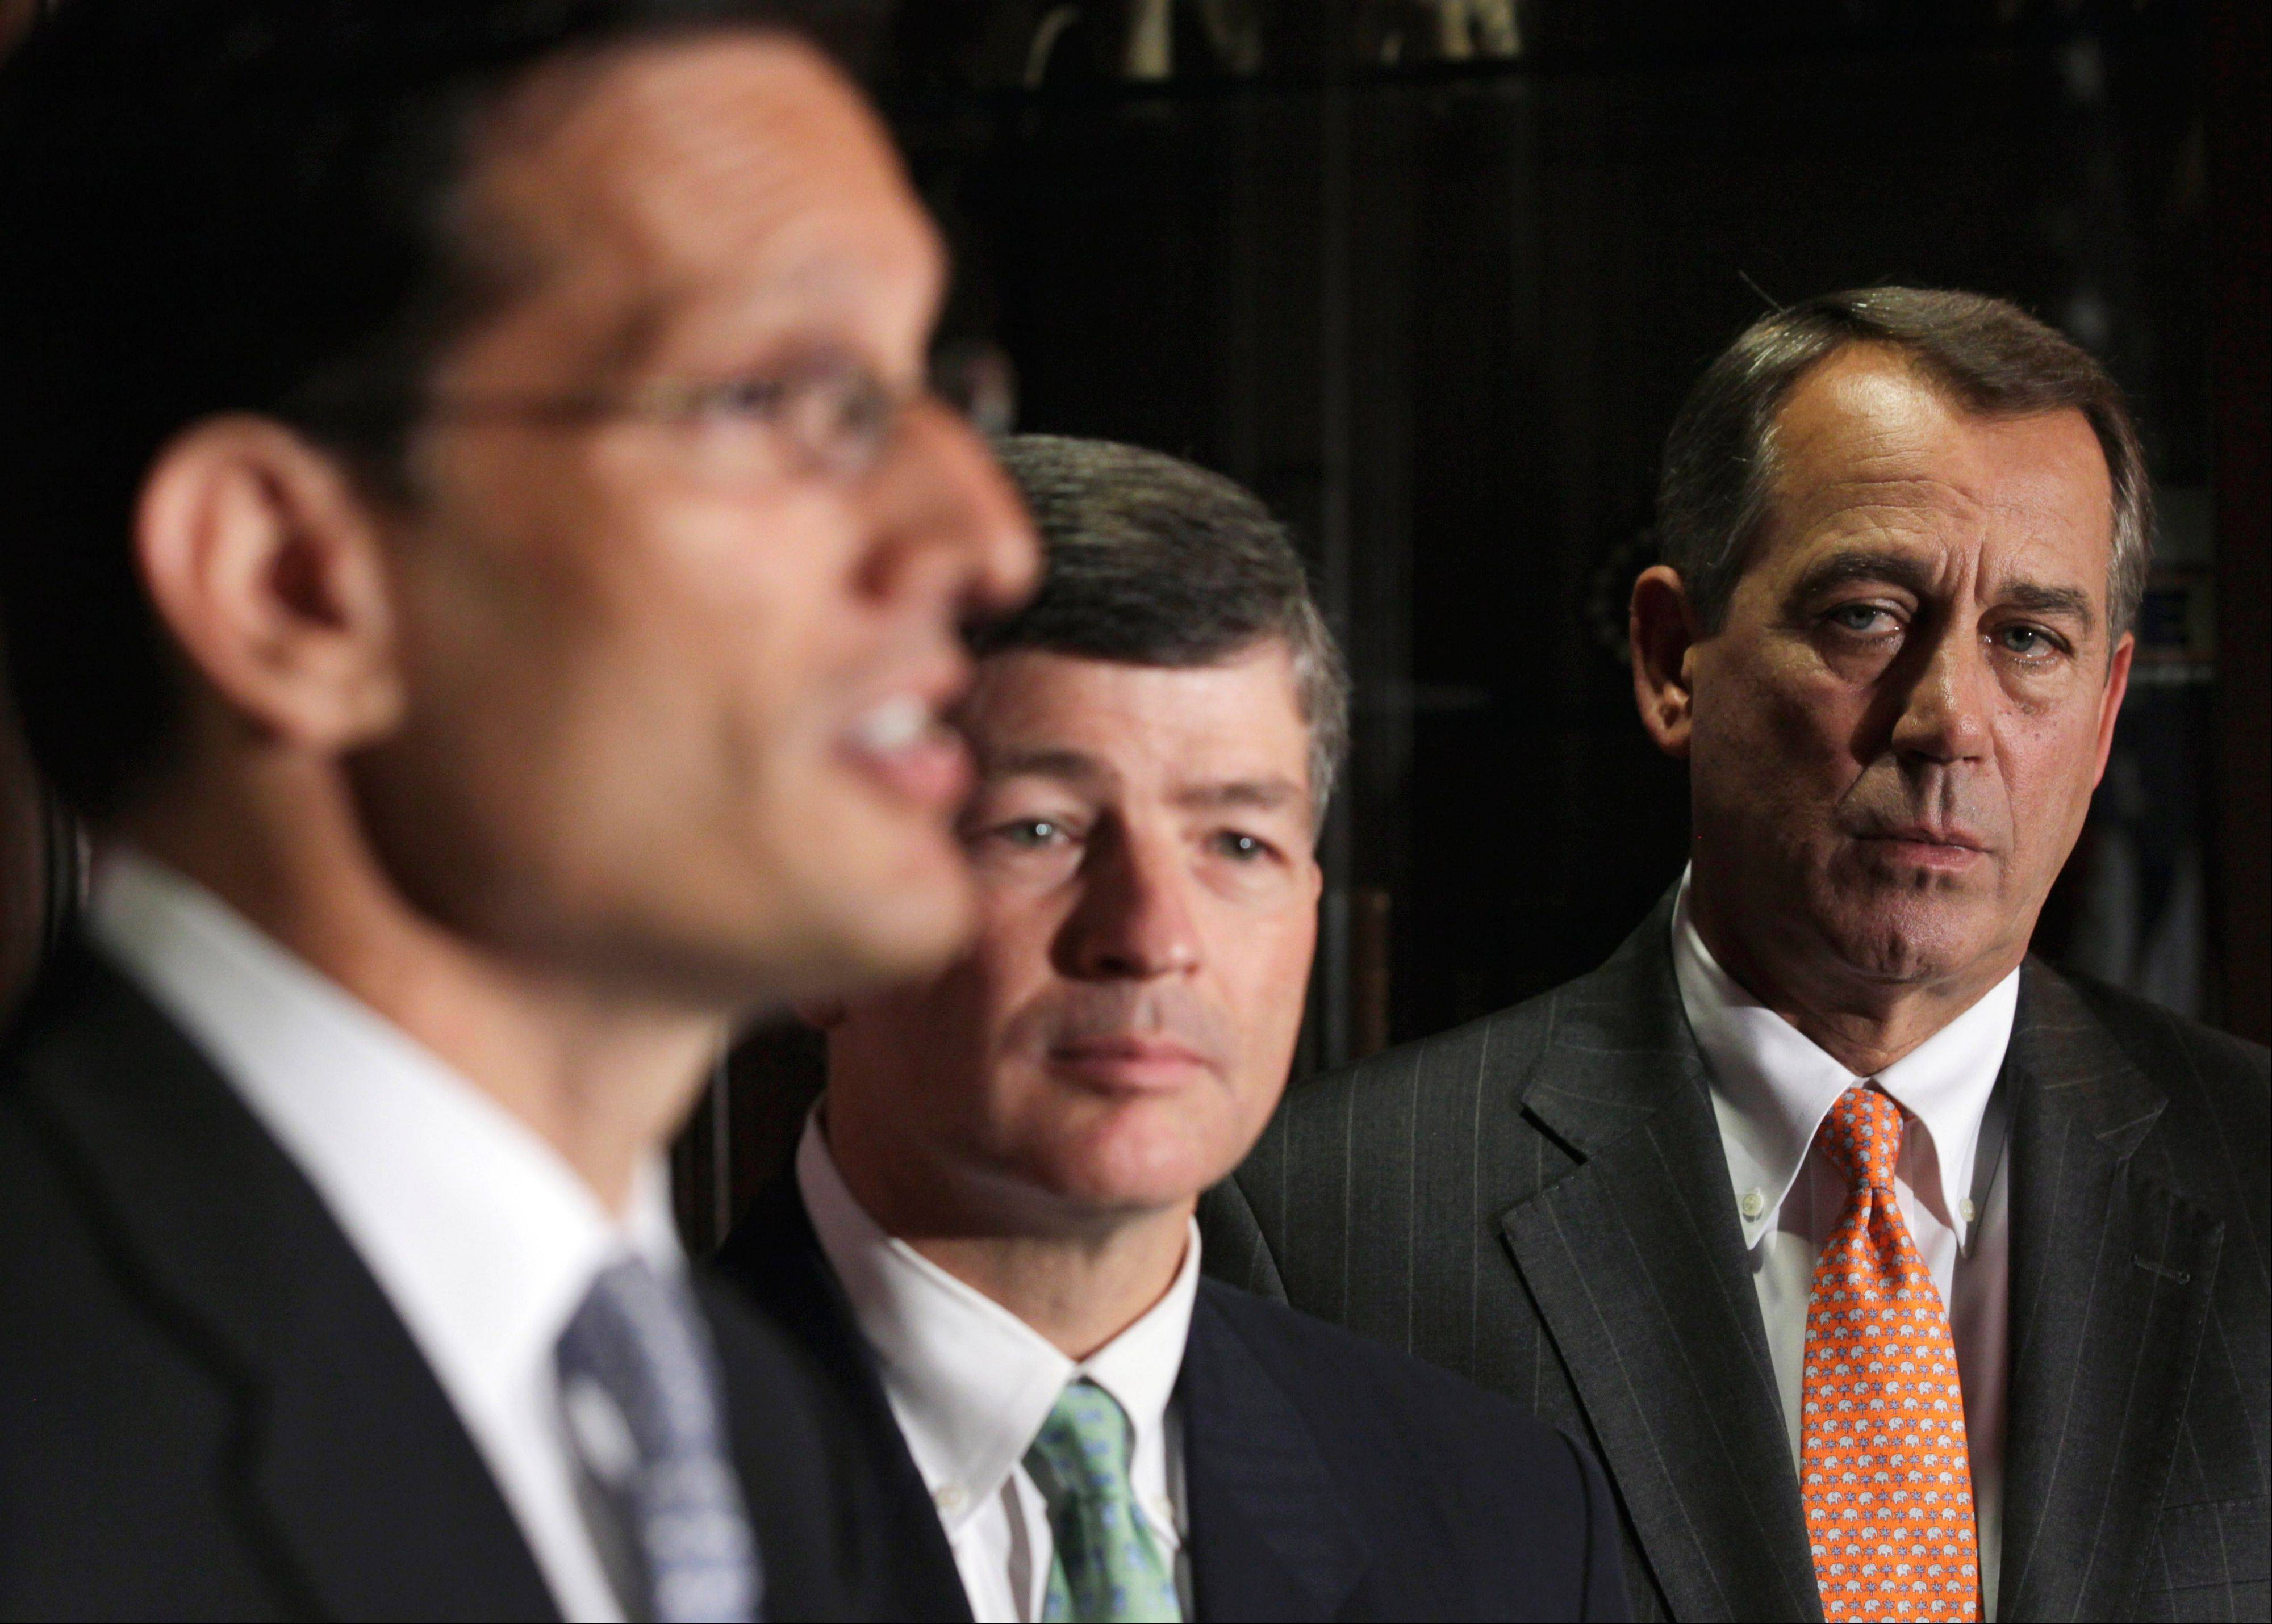 House Speaker John Boehner, right, and Republican Conference Chairman Rep. Jeb Hensarling of Texas, center, listen as House Majority Leader Eric Cantor speaks during a news conference on Capitol Hill Tuesday.